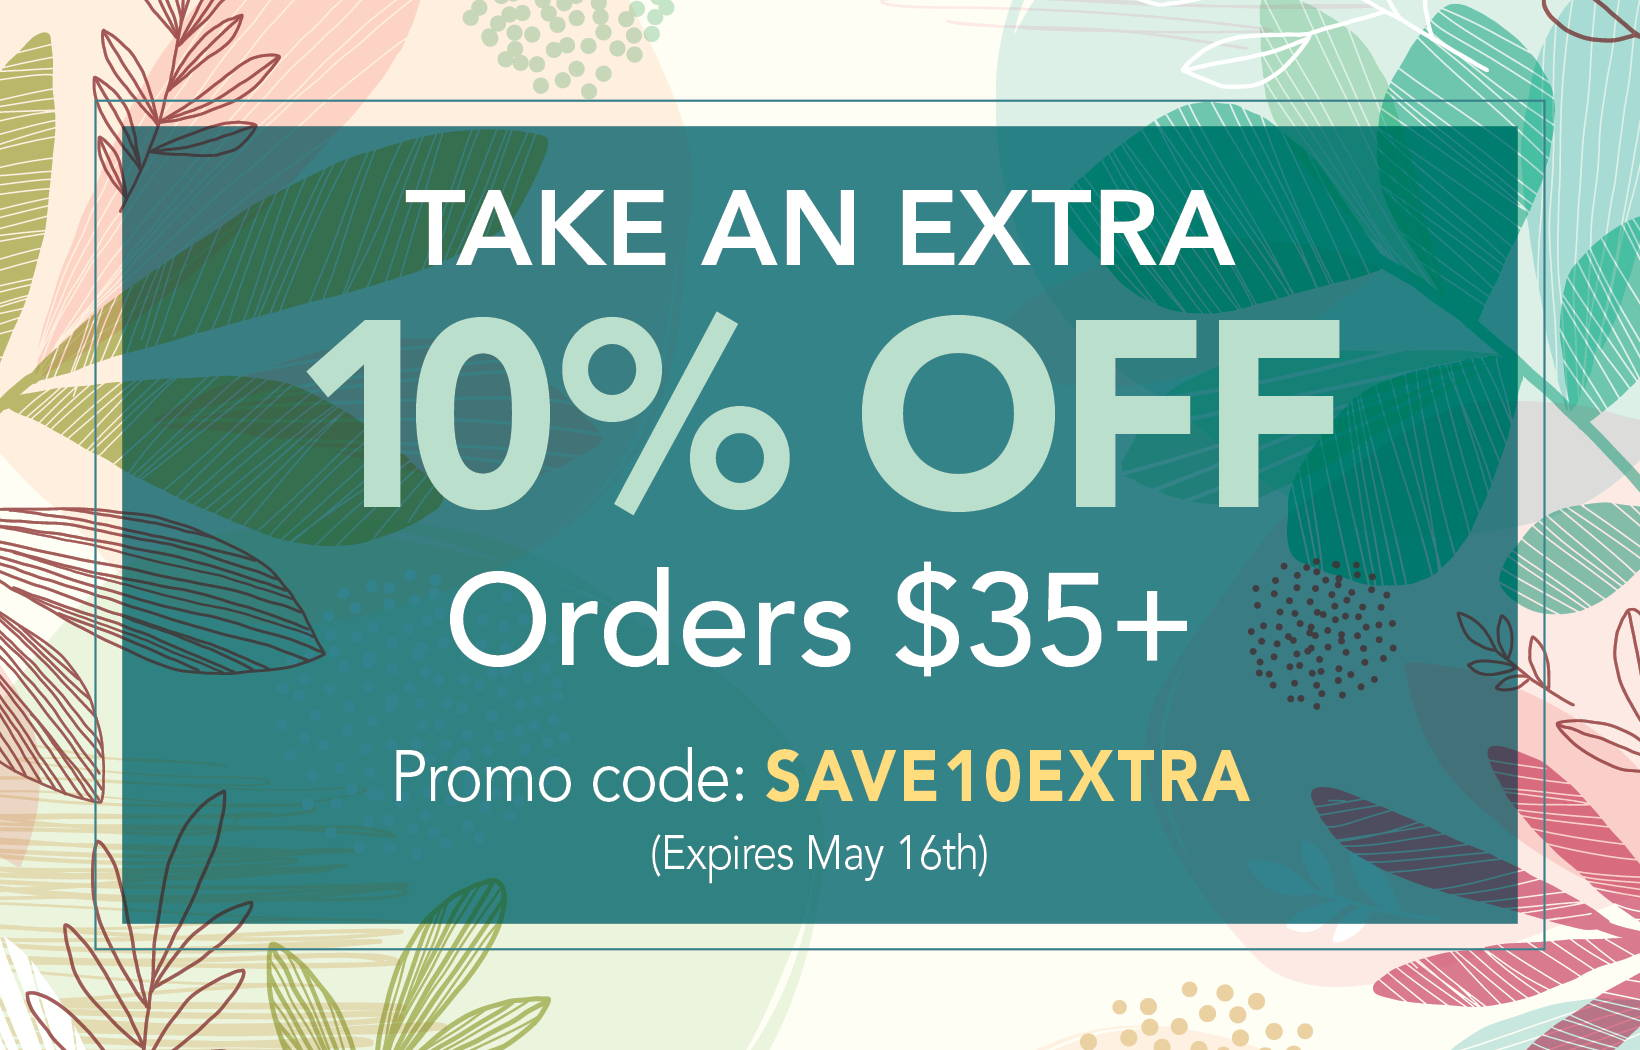 Save 10% off $35+ - pentecost resources - Promo code: SAVE10EXTRA